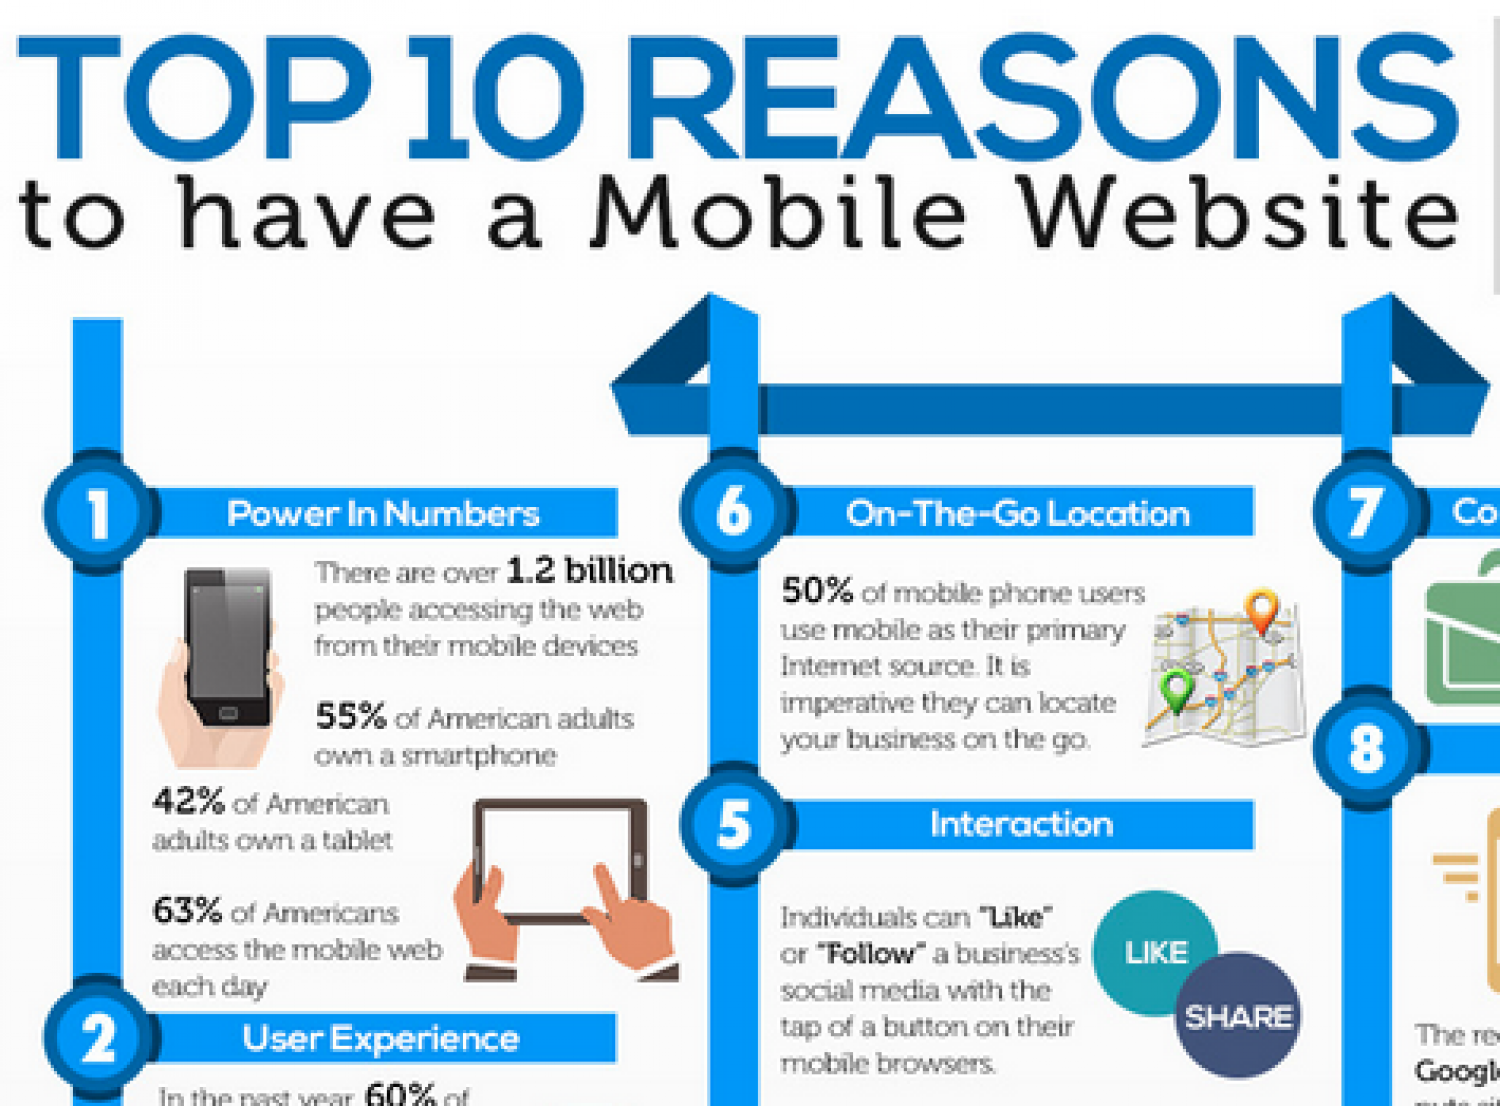 Top 10 Reasons to Have a Mobile Website Infographic